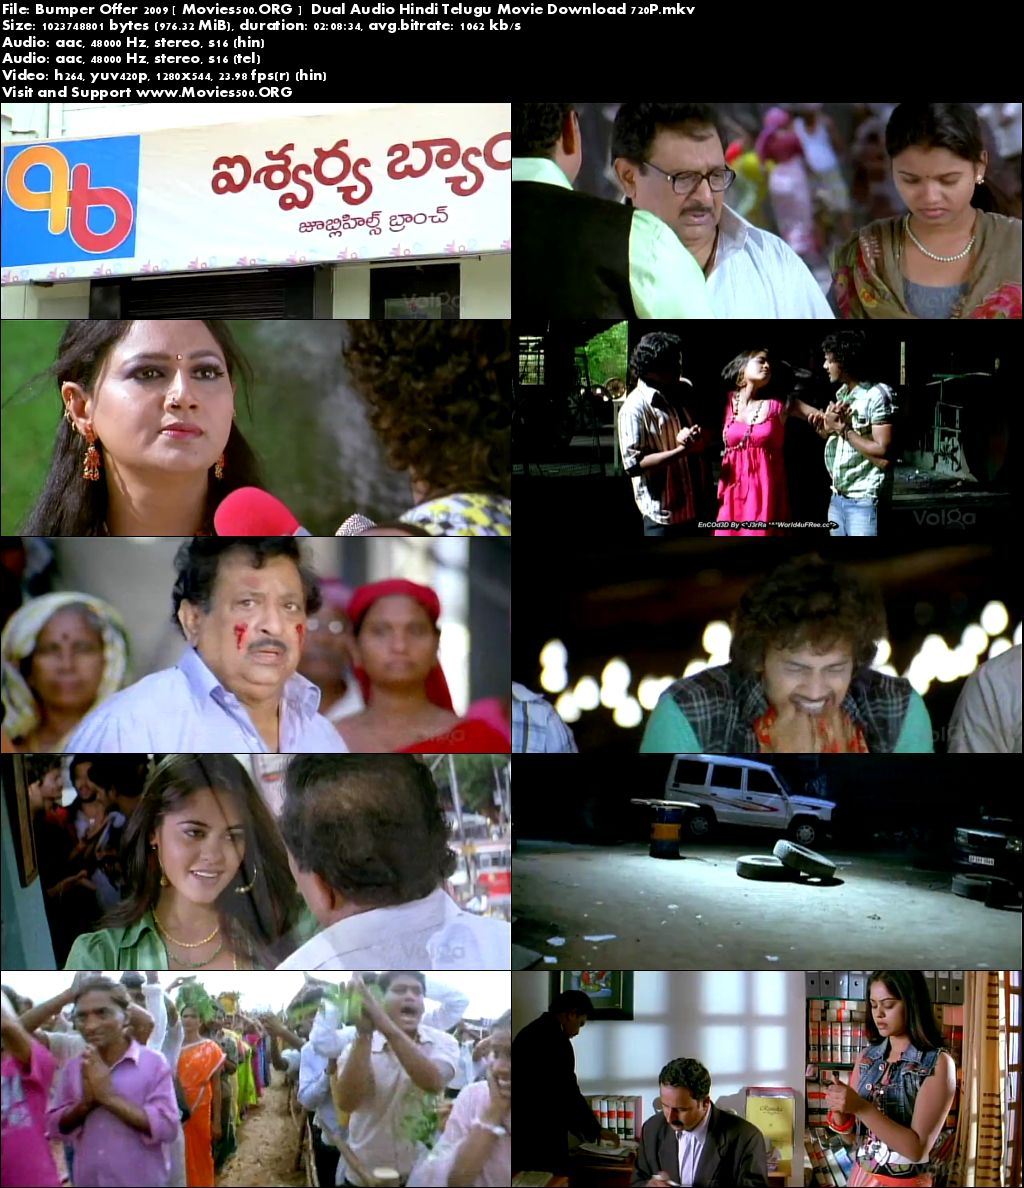 Bumper Offer 2009 Dual Audio Hindi Telugu Movie Download at movies500.site